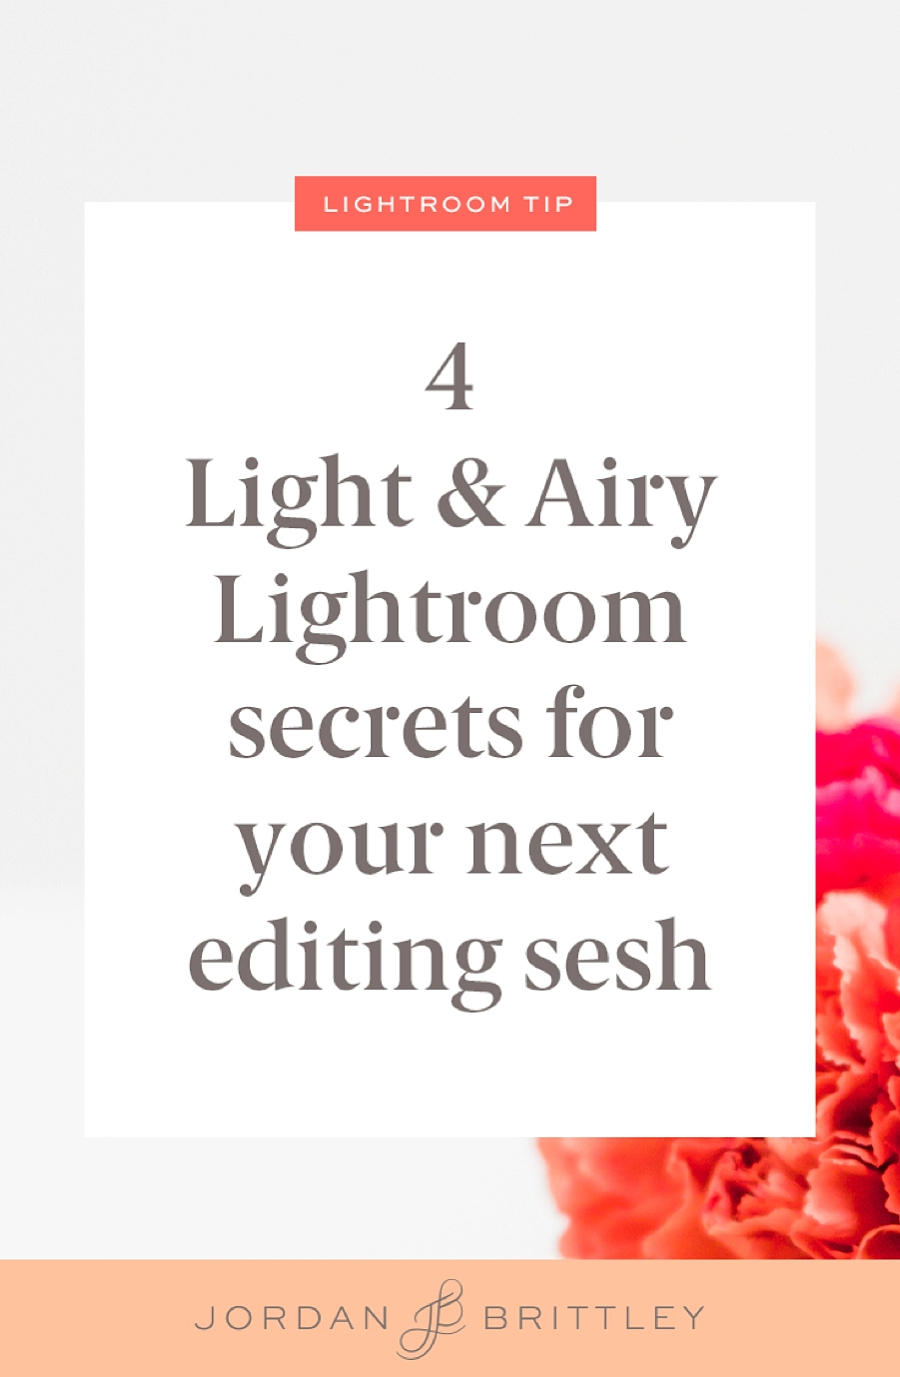 4 light and airy lightroom secrets for your next editing session